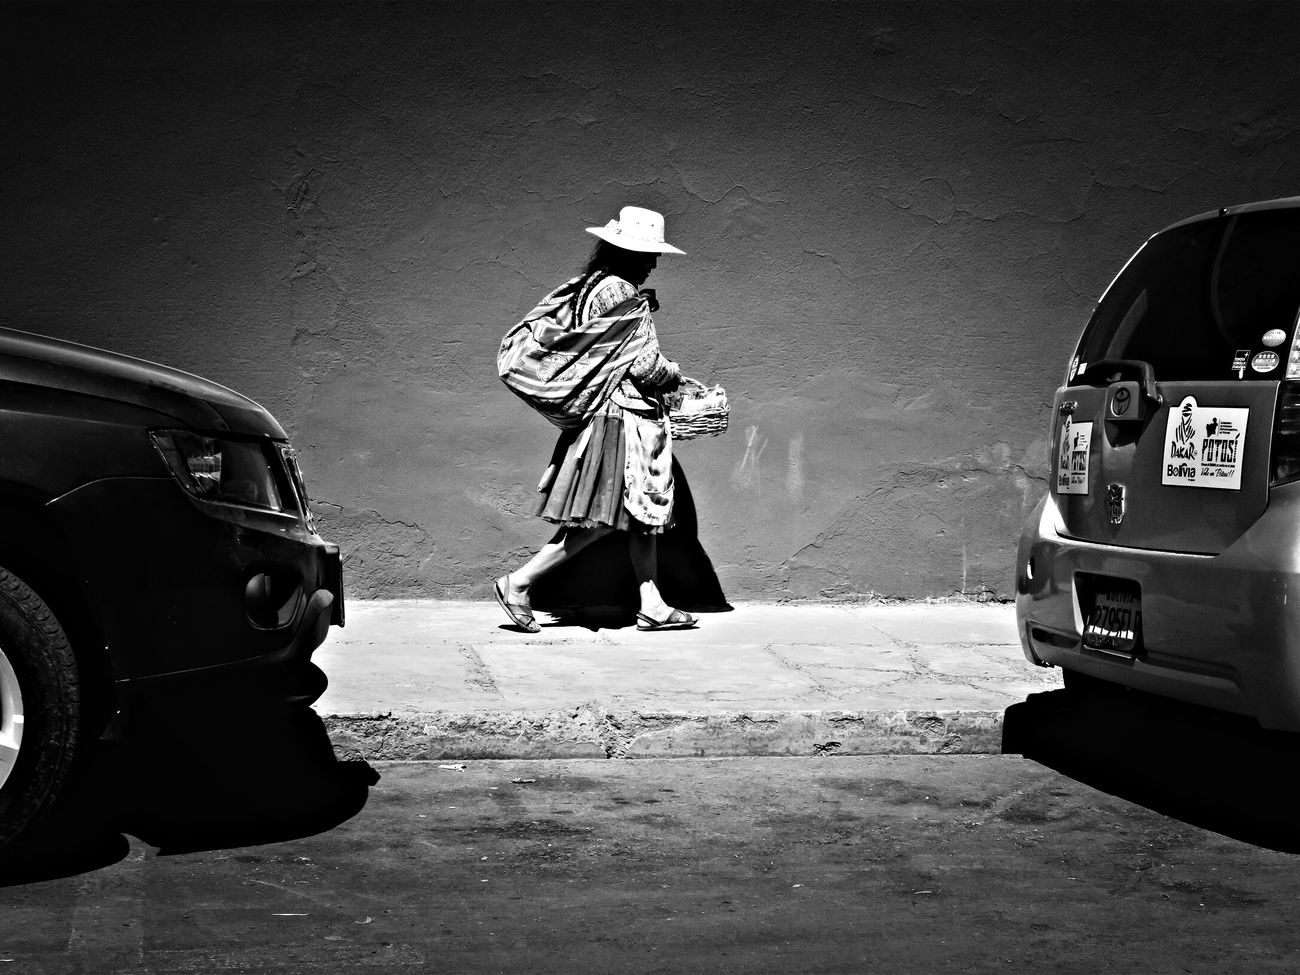 Cochabamba Real People One Person People Streetphotography Blackandwhite Women Monochrome Bolivia EyeEm Best Shots - Black + White EyeEm Best Edits Traveling Street